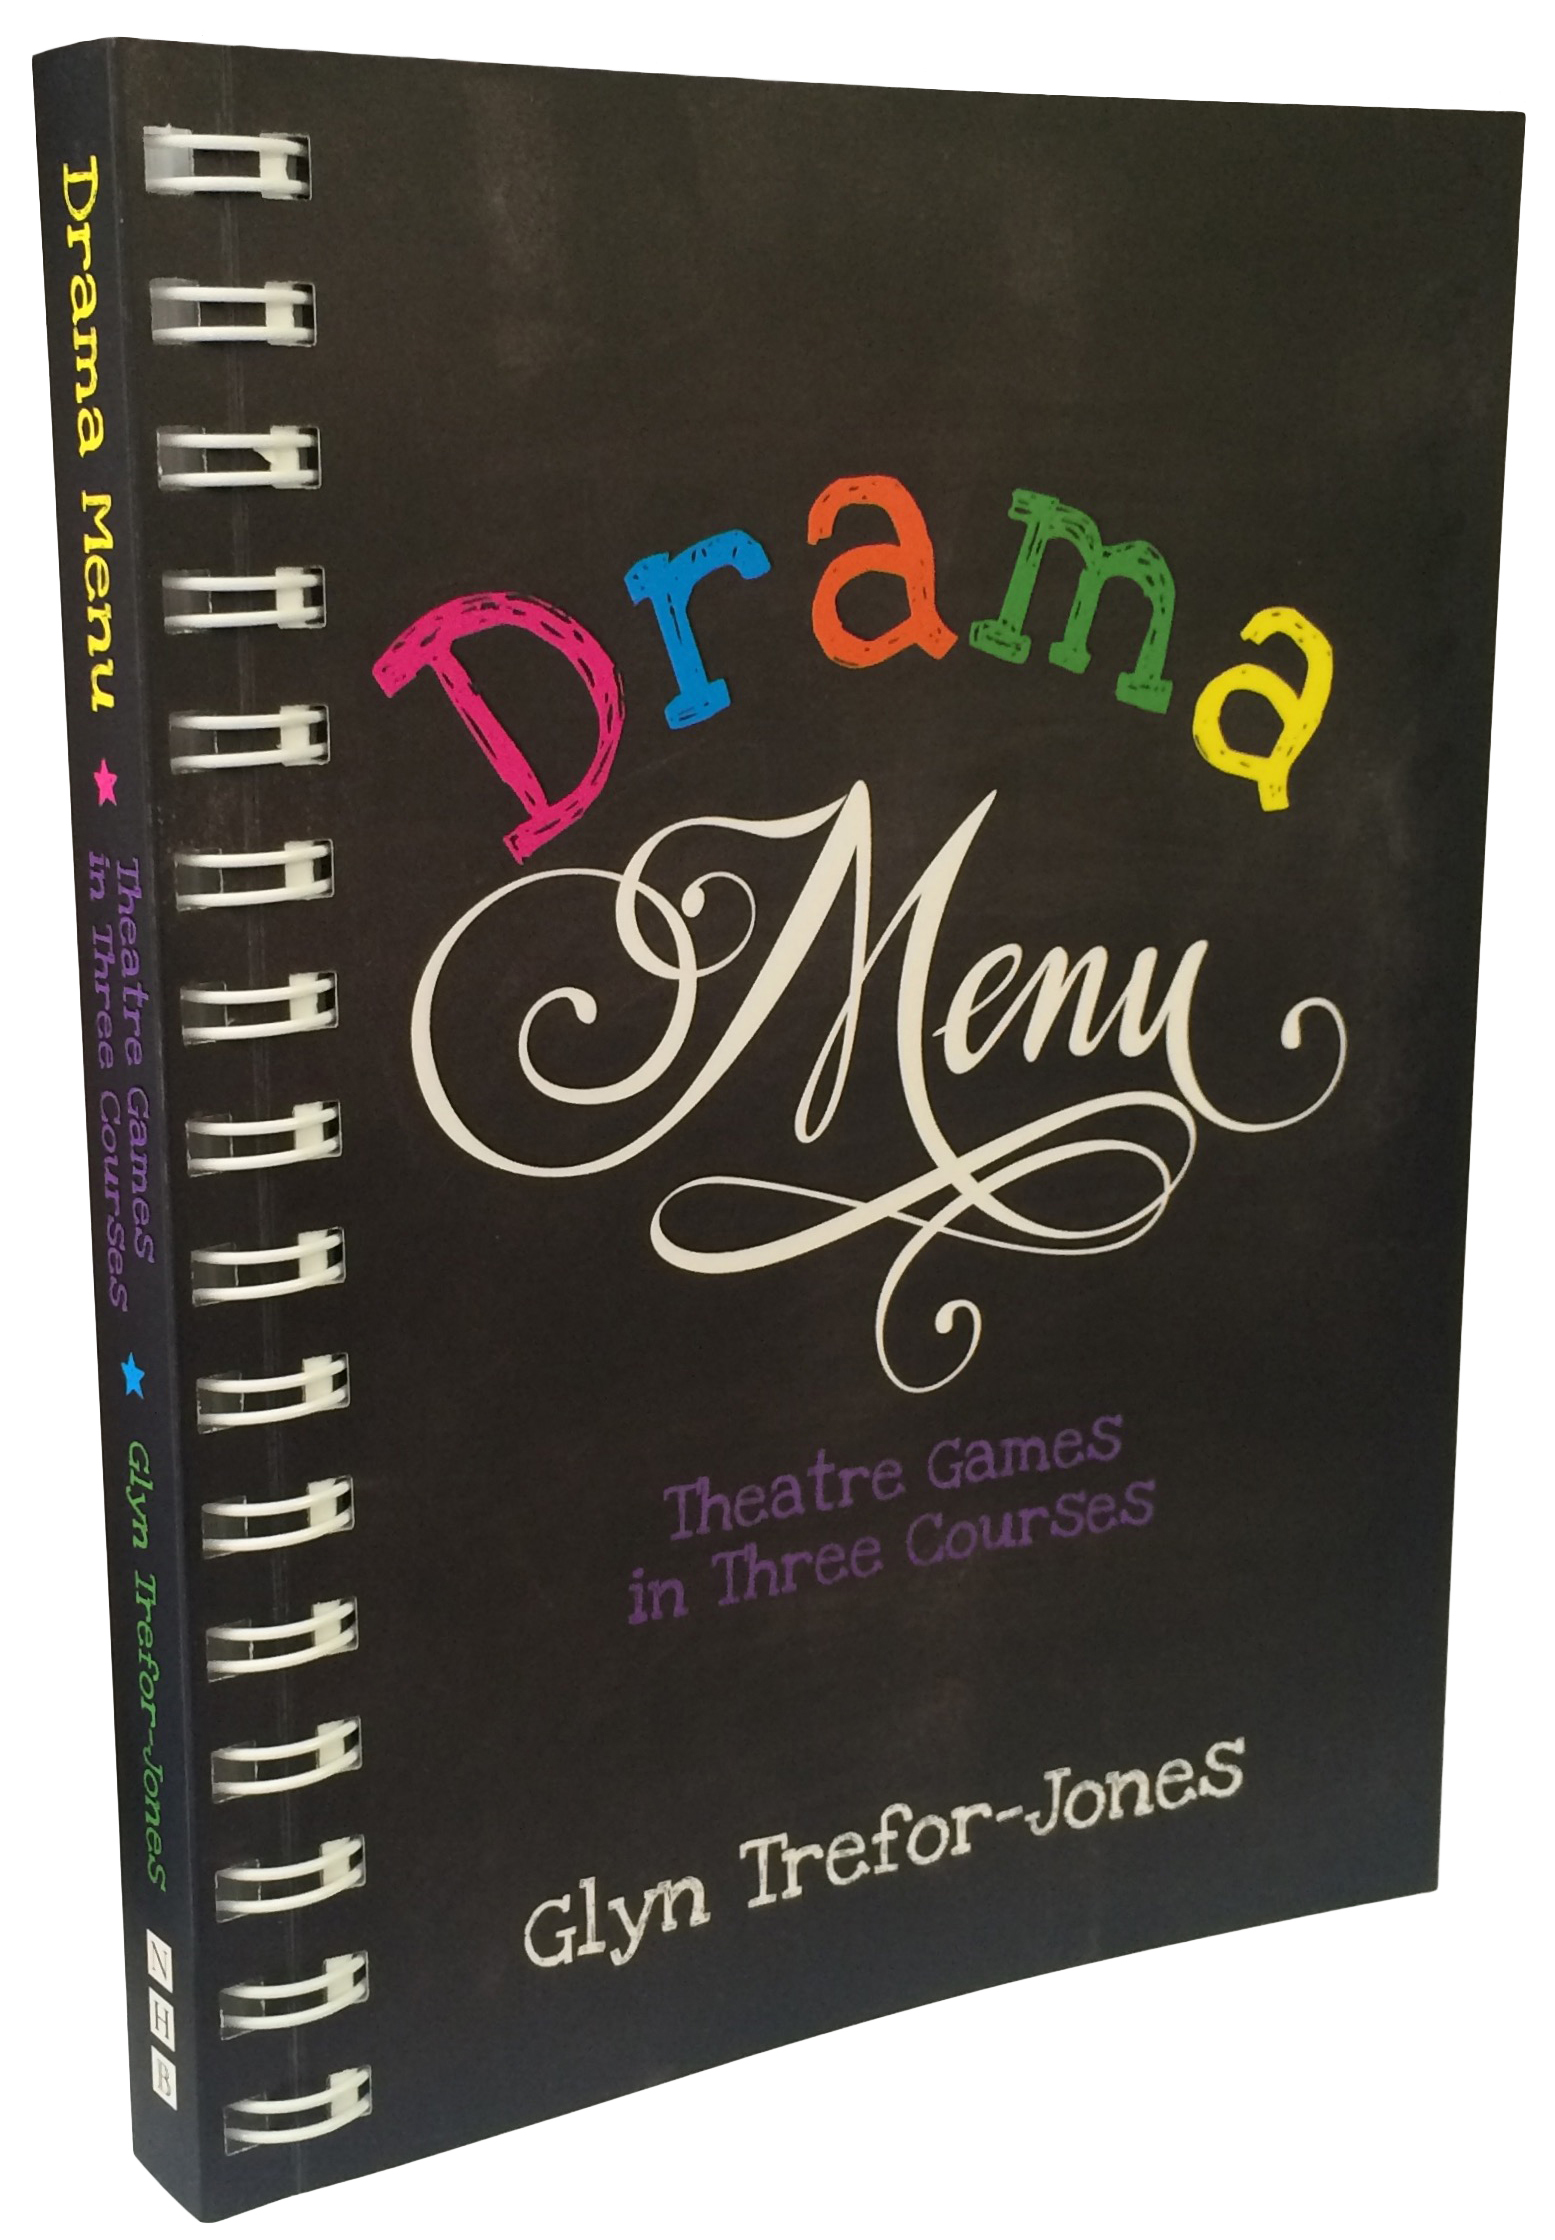 Nick Hern Books - Drama Menu pack shot